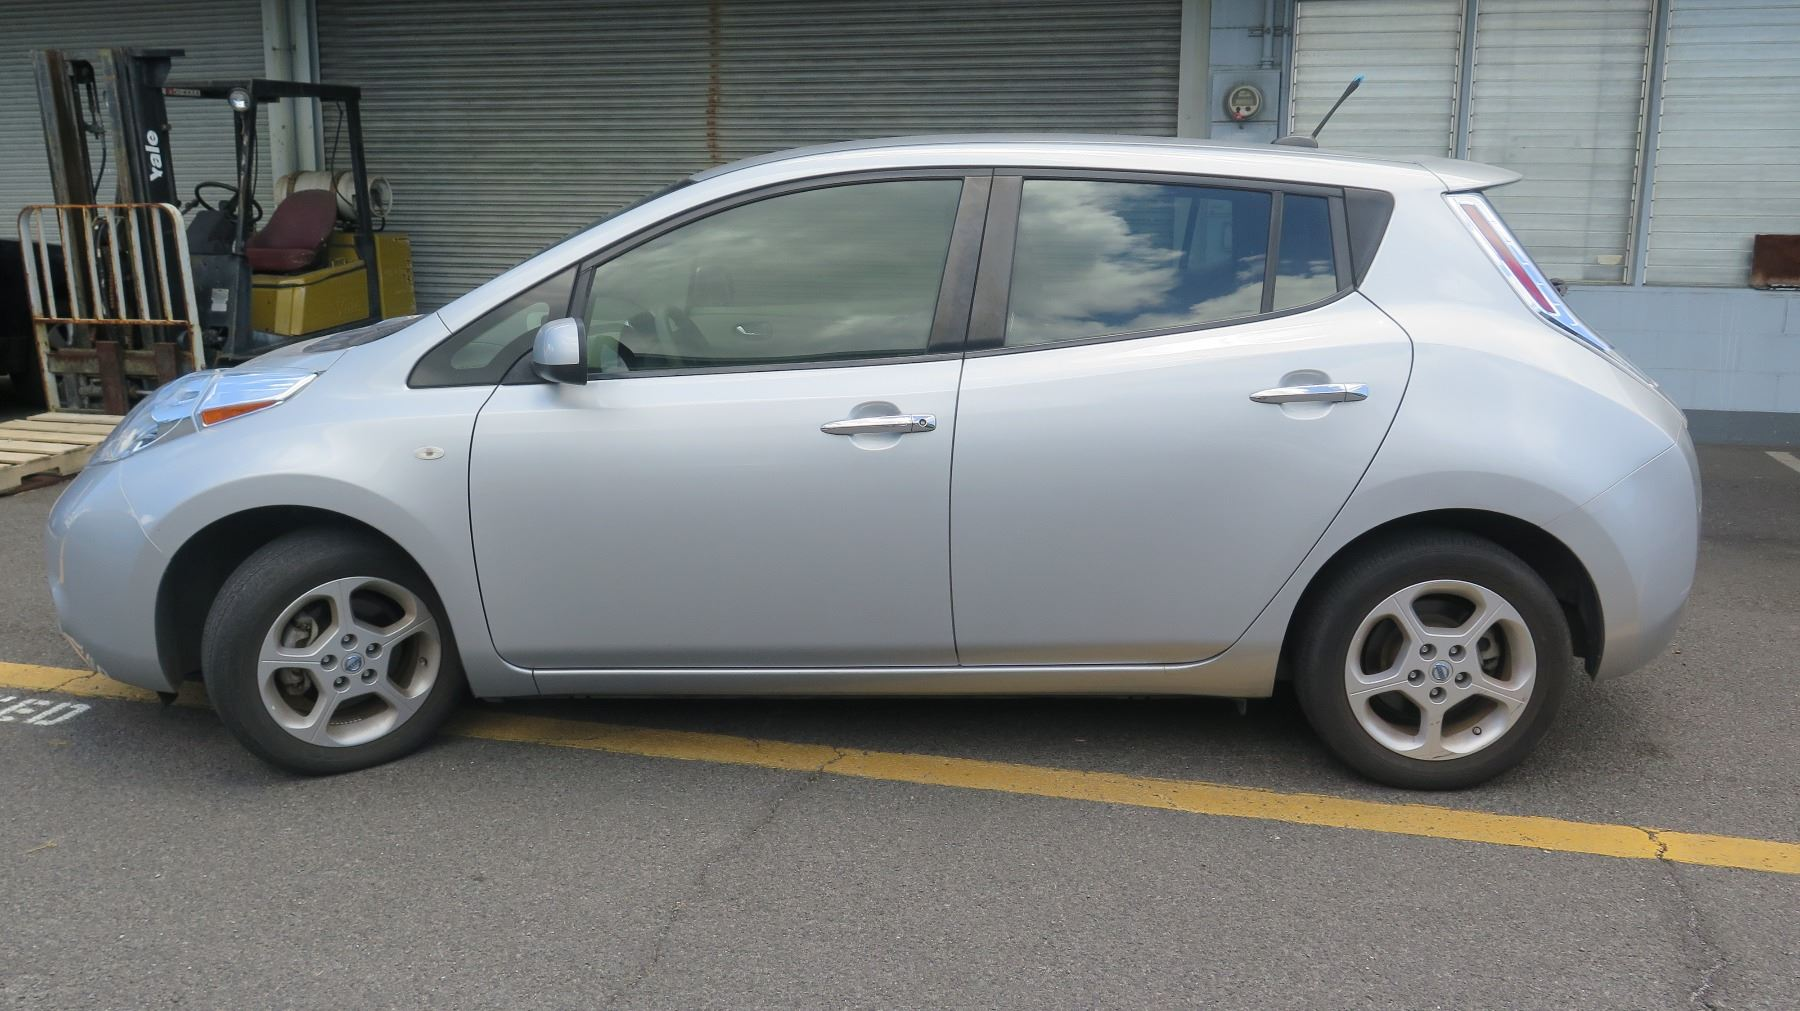 Video; Image 1 : 2012 Nissan Leaf Electric Car   Under Warranty,  Transferable, Battery Charges ...